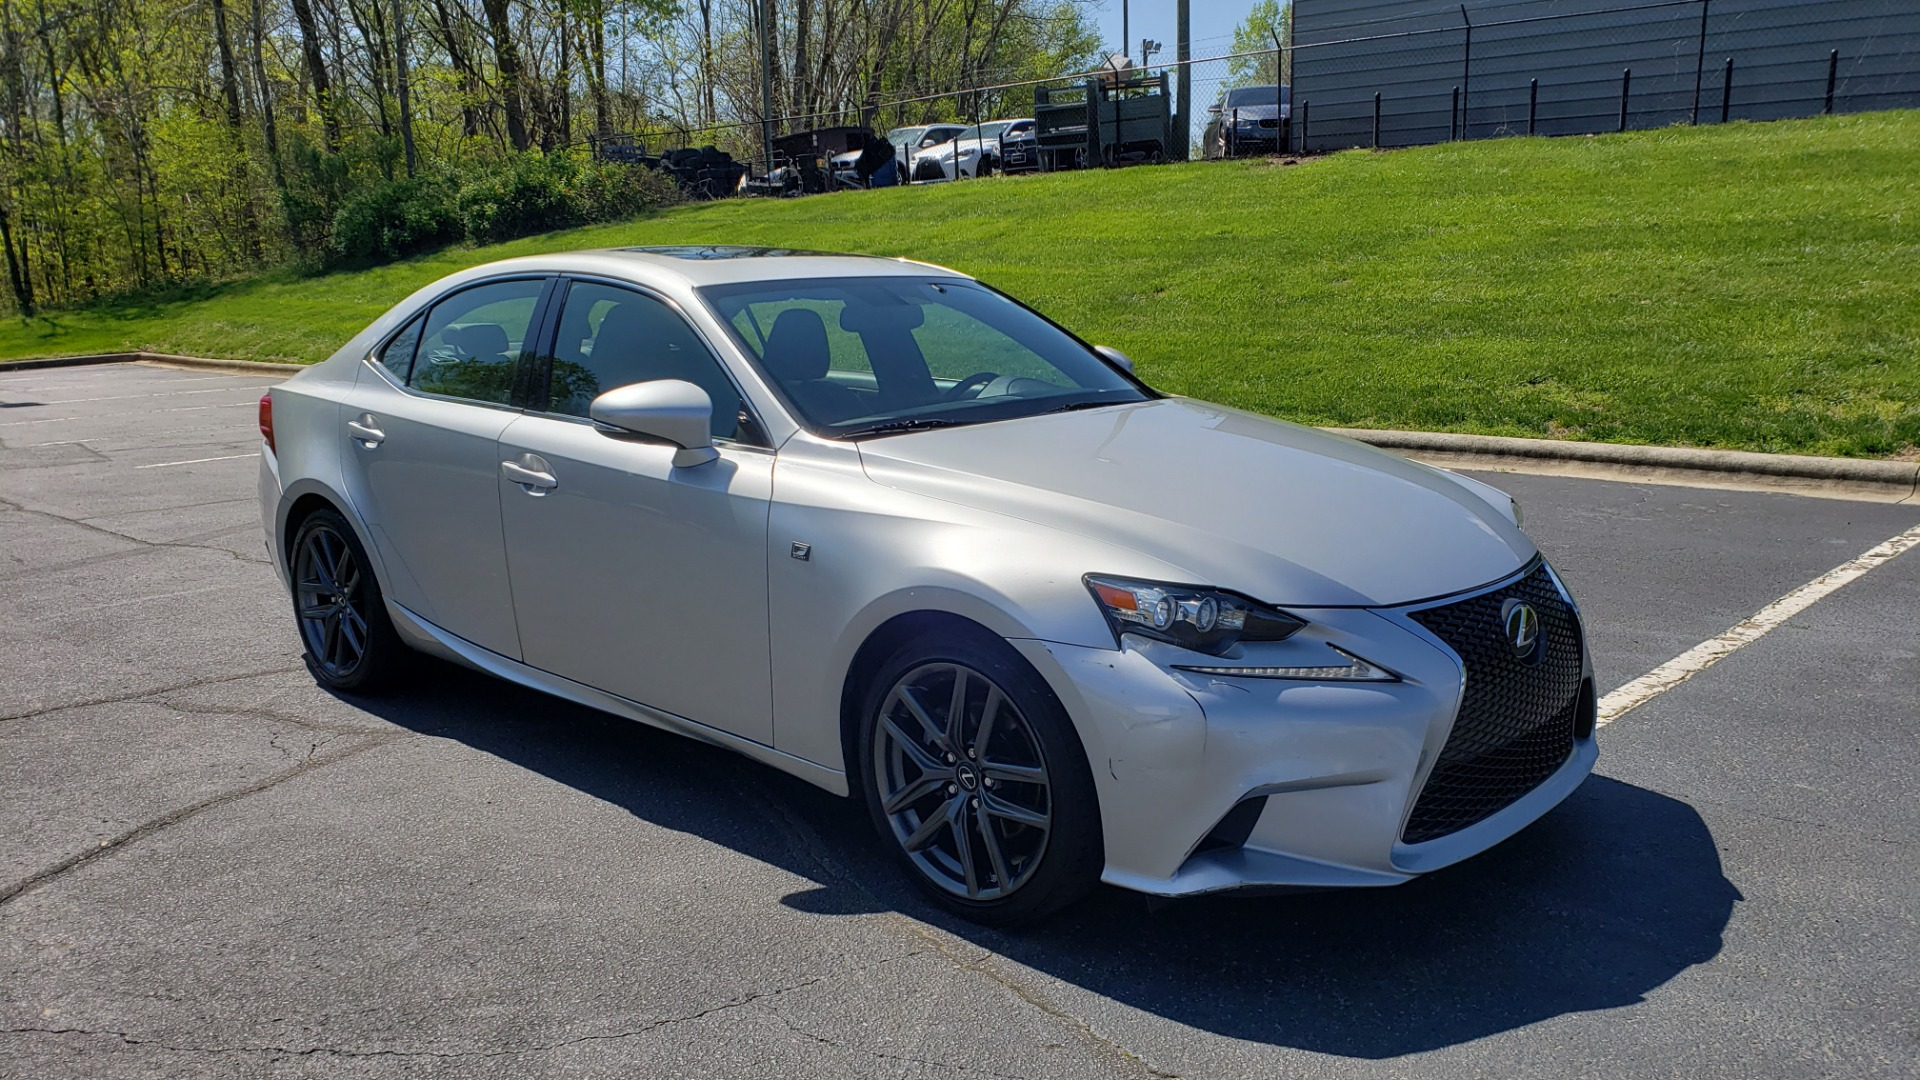 Used 2015 Lexus IS 250 F-SPORT / BSM / SUNROOF / VENT SEATS / REARVIEW for sale Sold at Formula Imports in Charlotte NC 28227 4